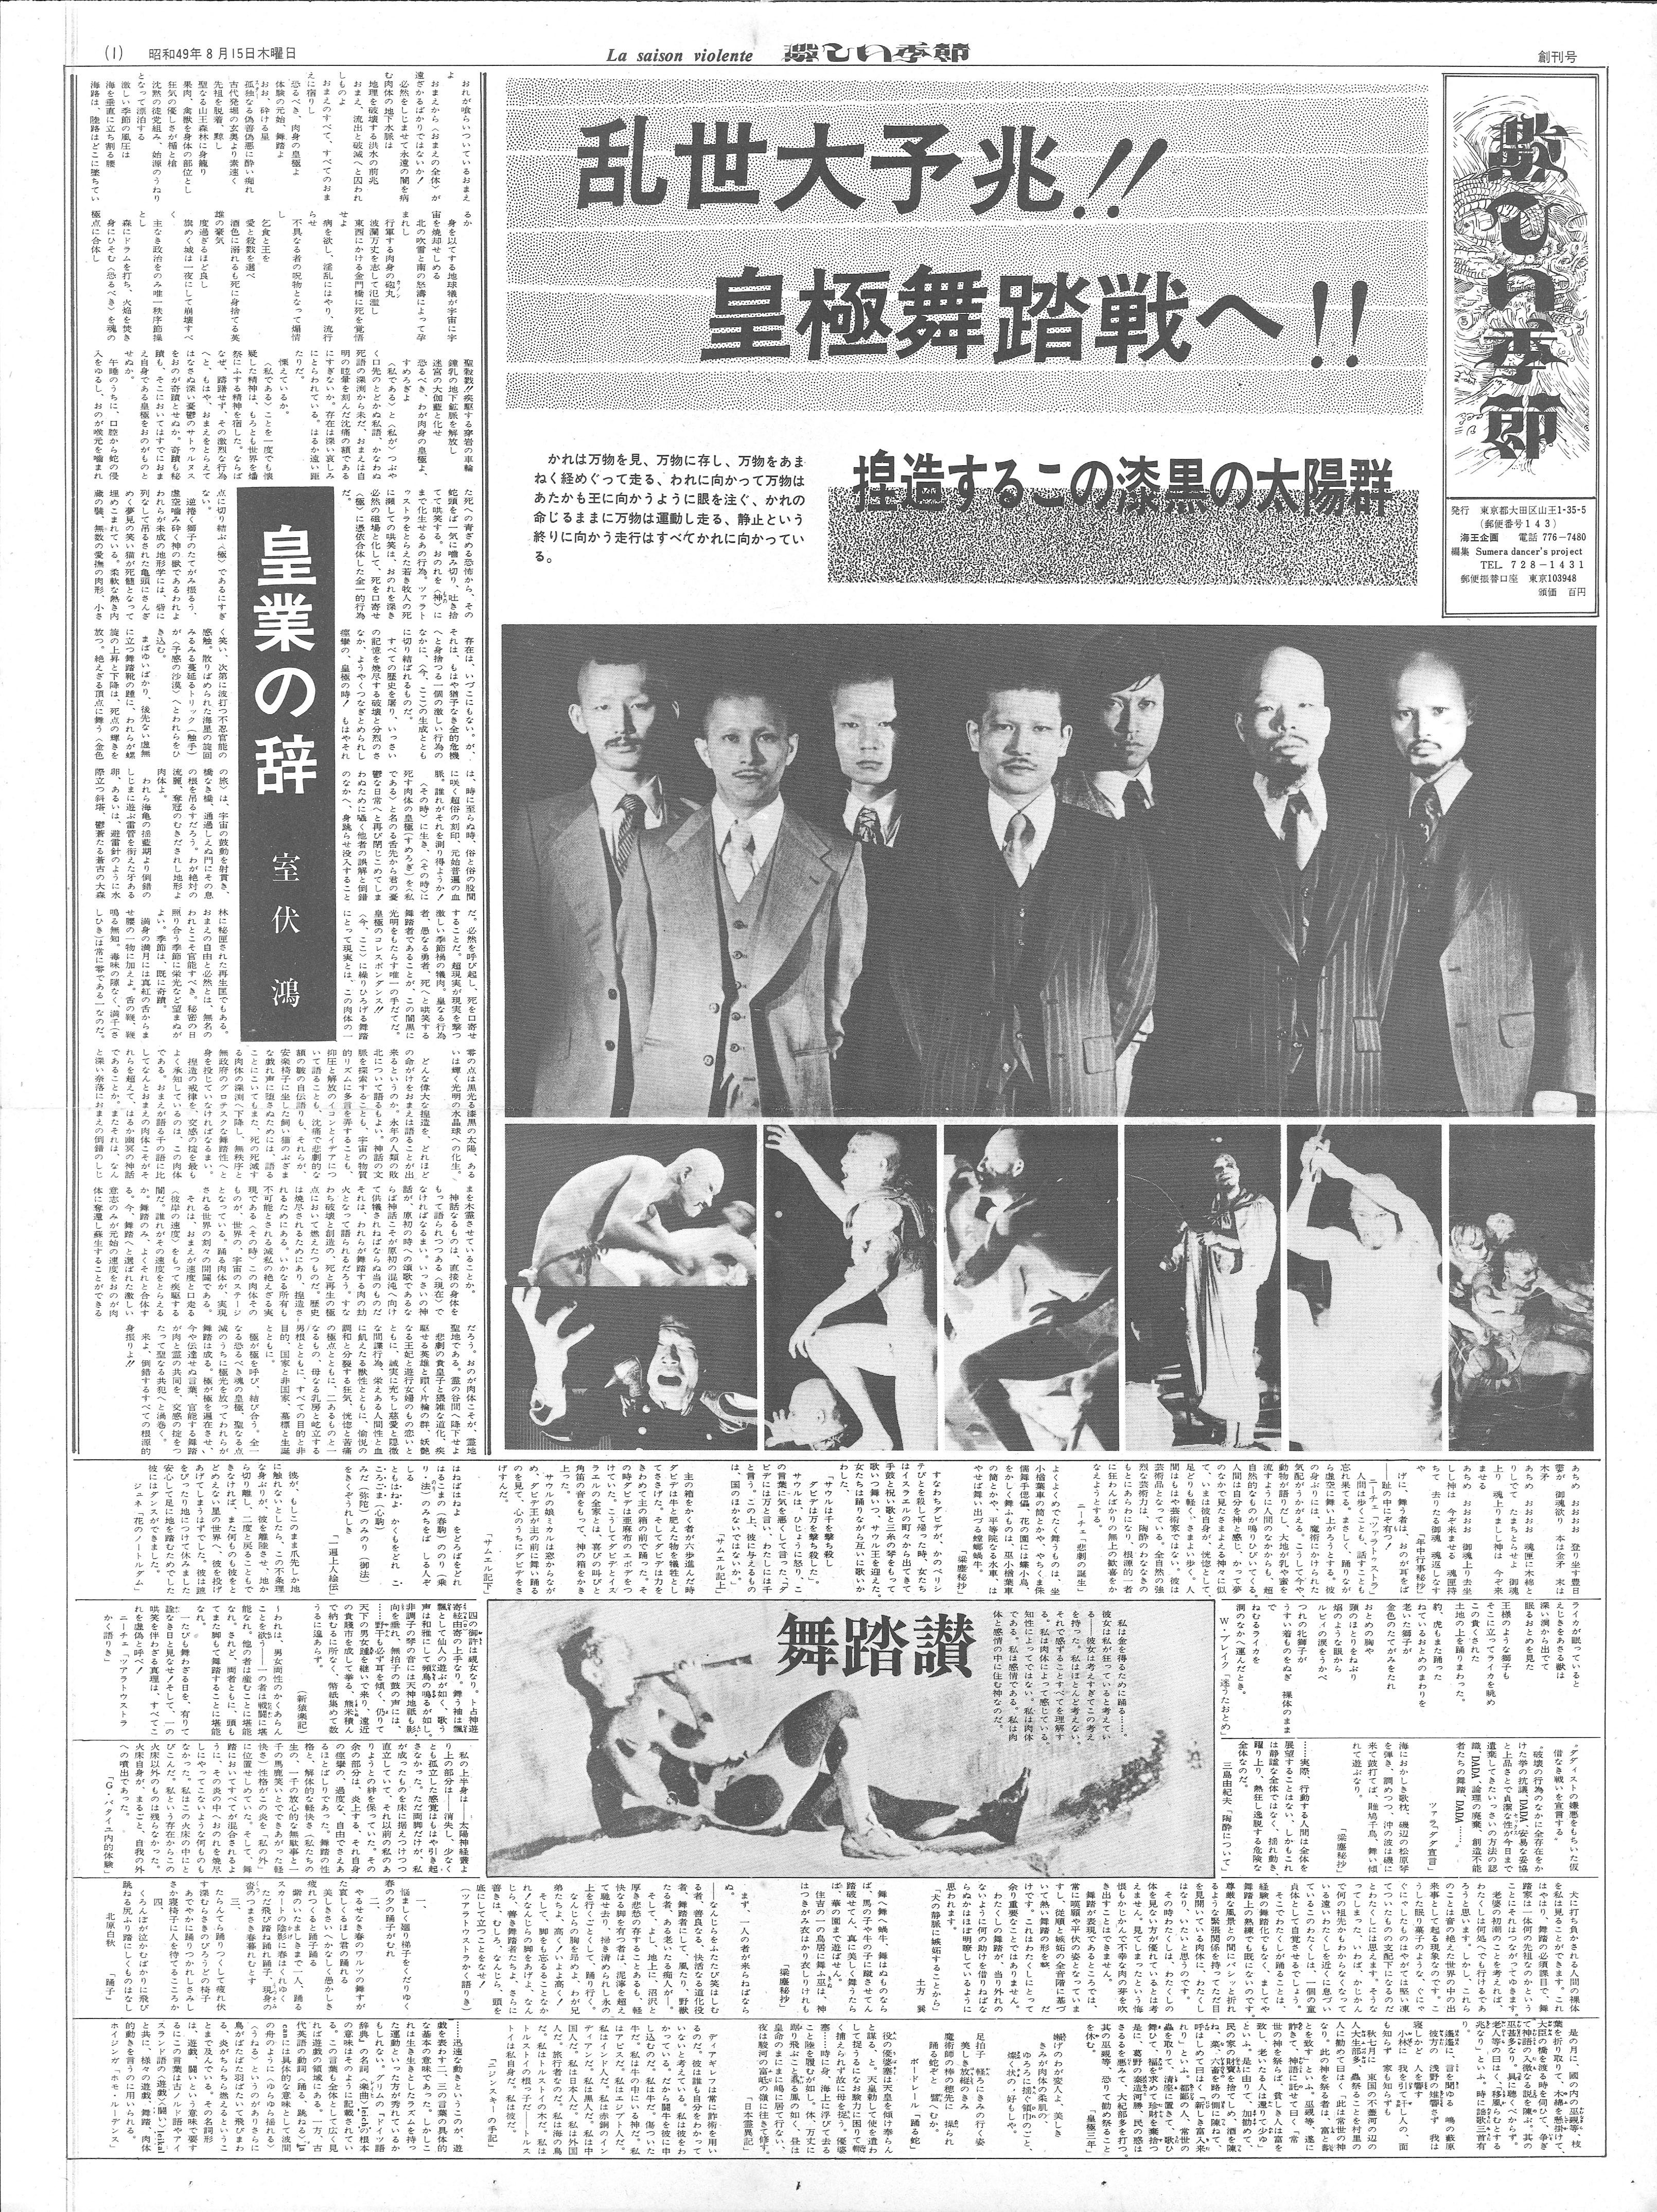 Butoh News Paper La saison violente - First Issue[Newspaper]